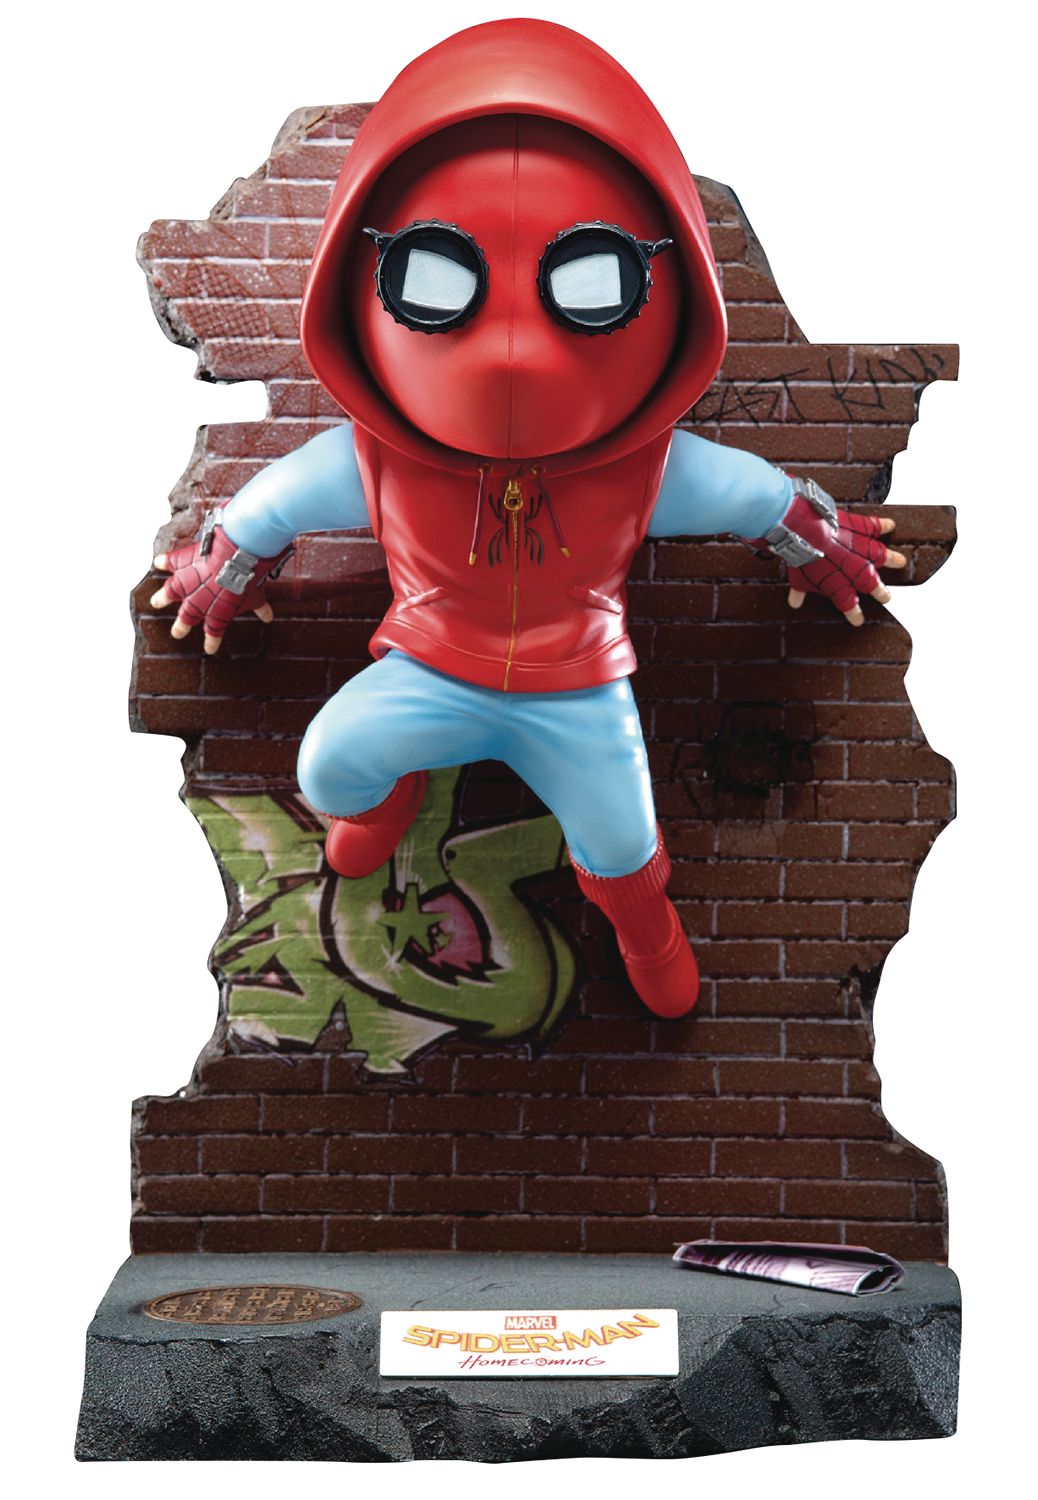 SPIDER-MAN HOMECOMING EA-029 SPIDER-MAN PX STATUE